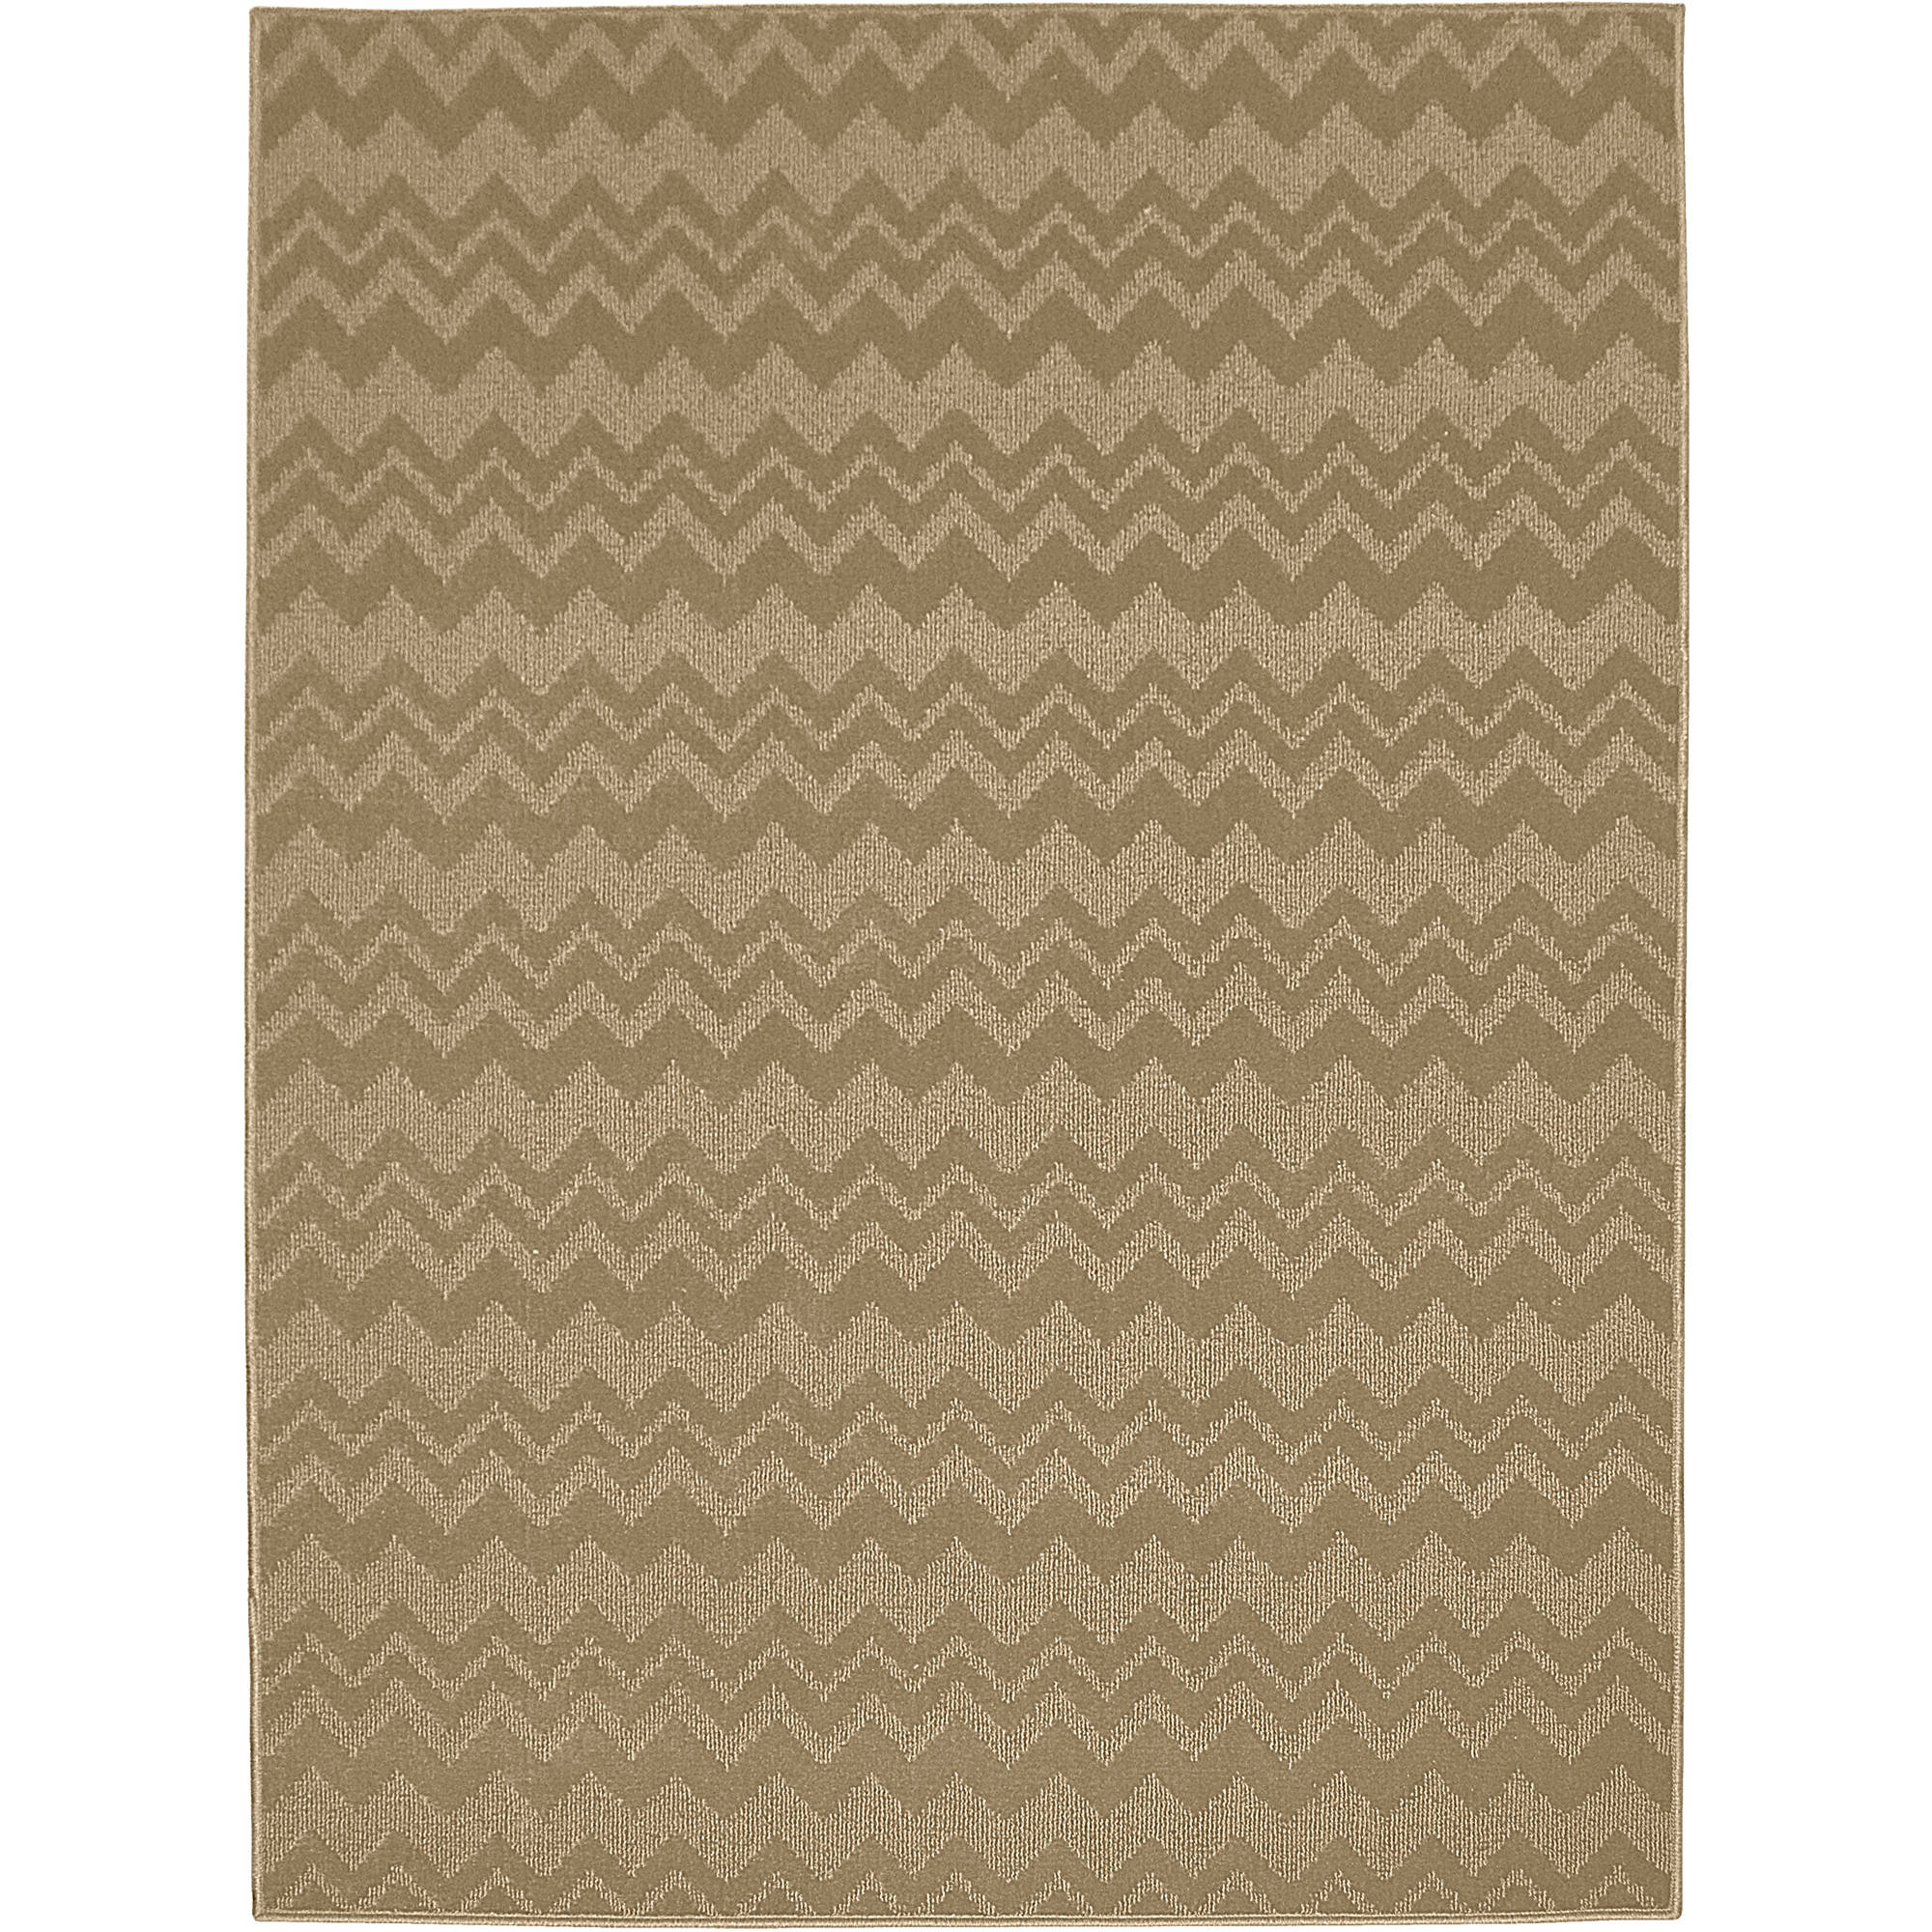 Garland Zig-Zag Patterned Olefin Area Rug